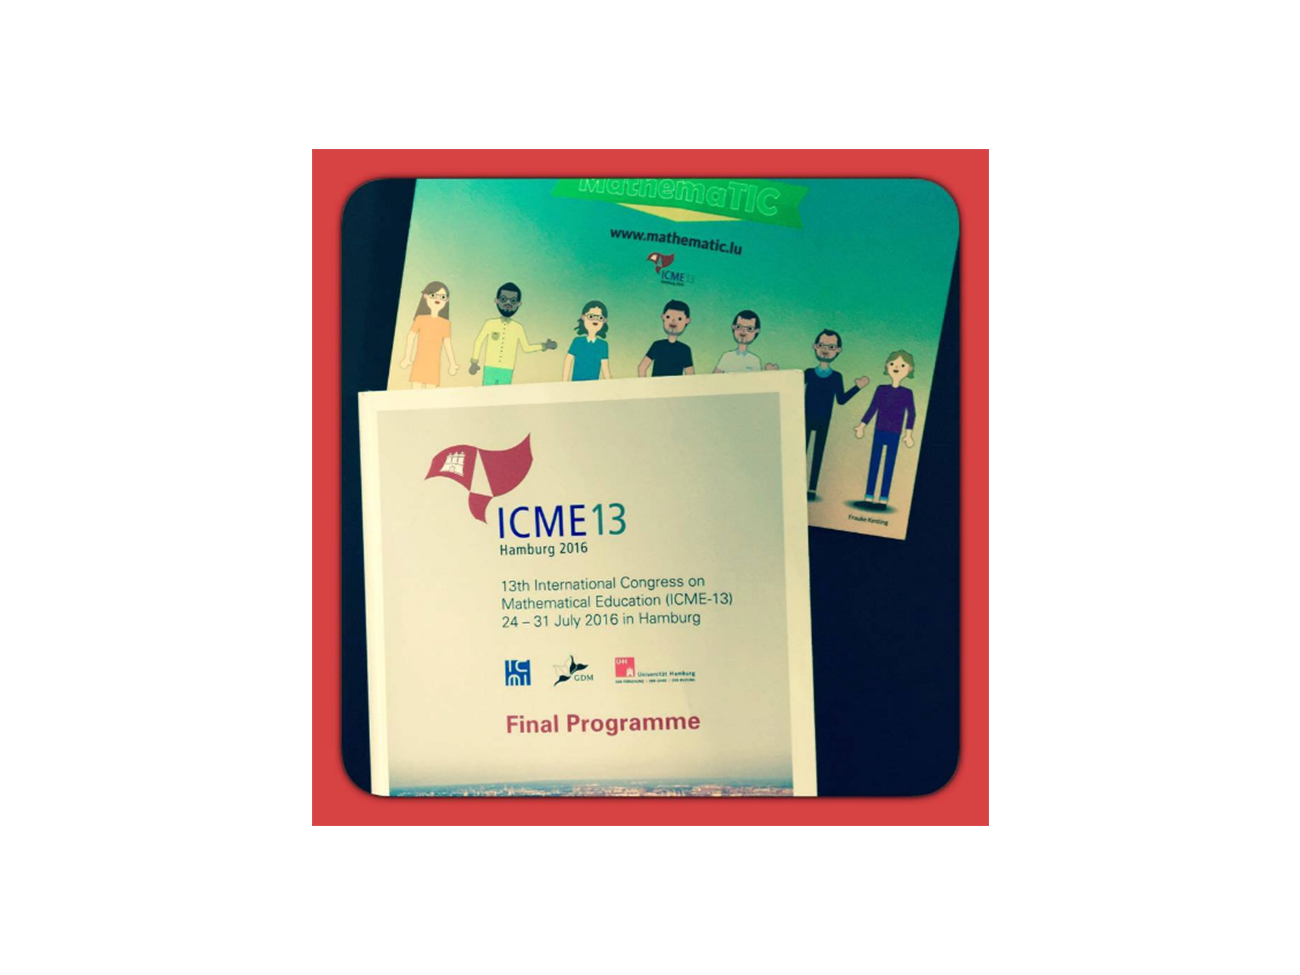 Technology in the Mathematics Classroom: Experiences at ICME-13